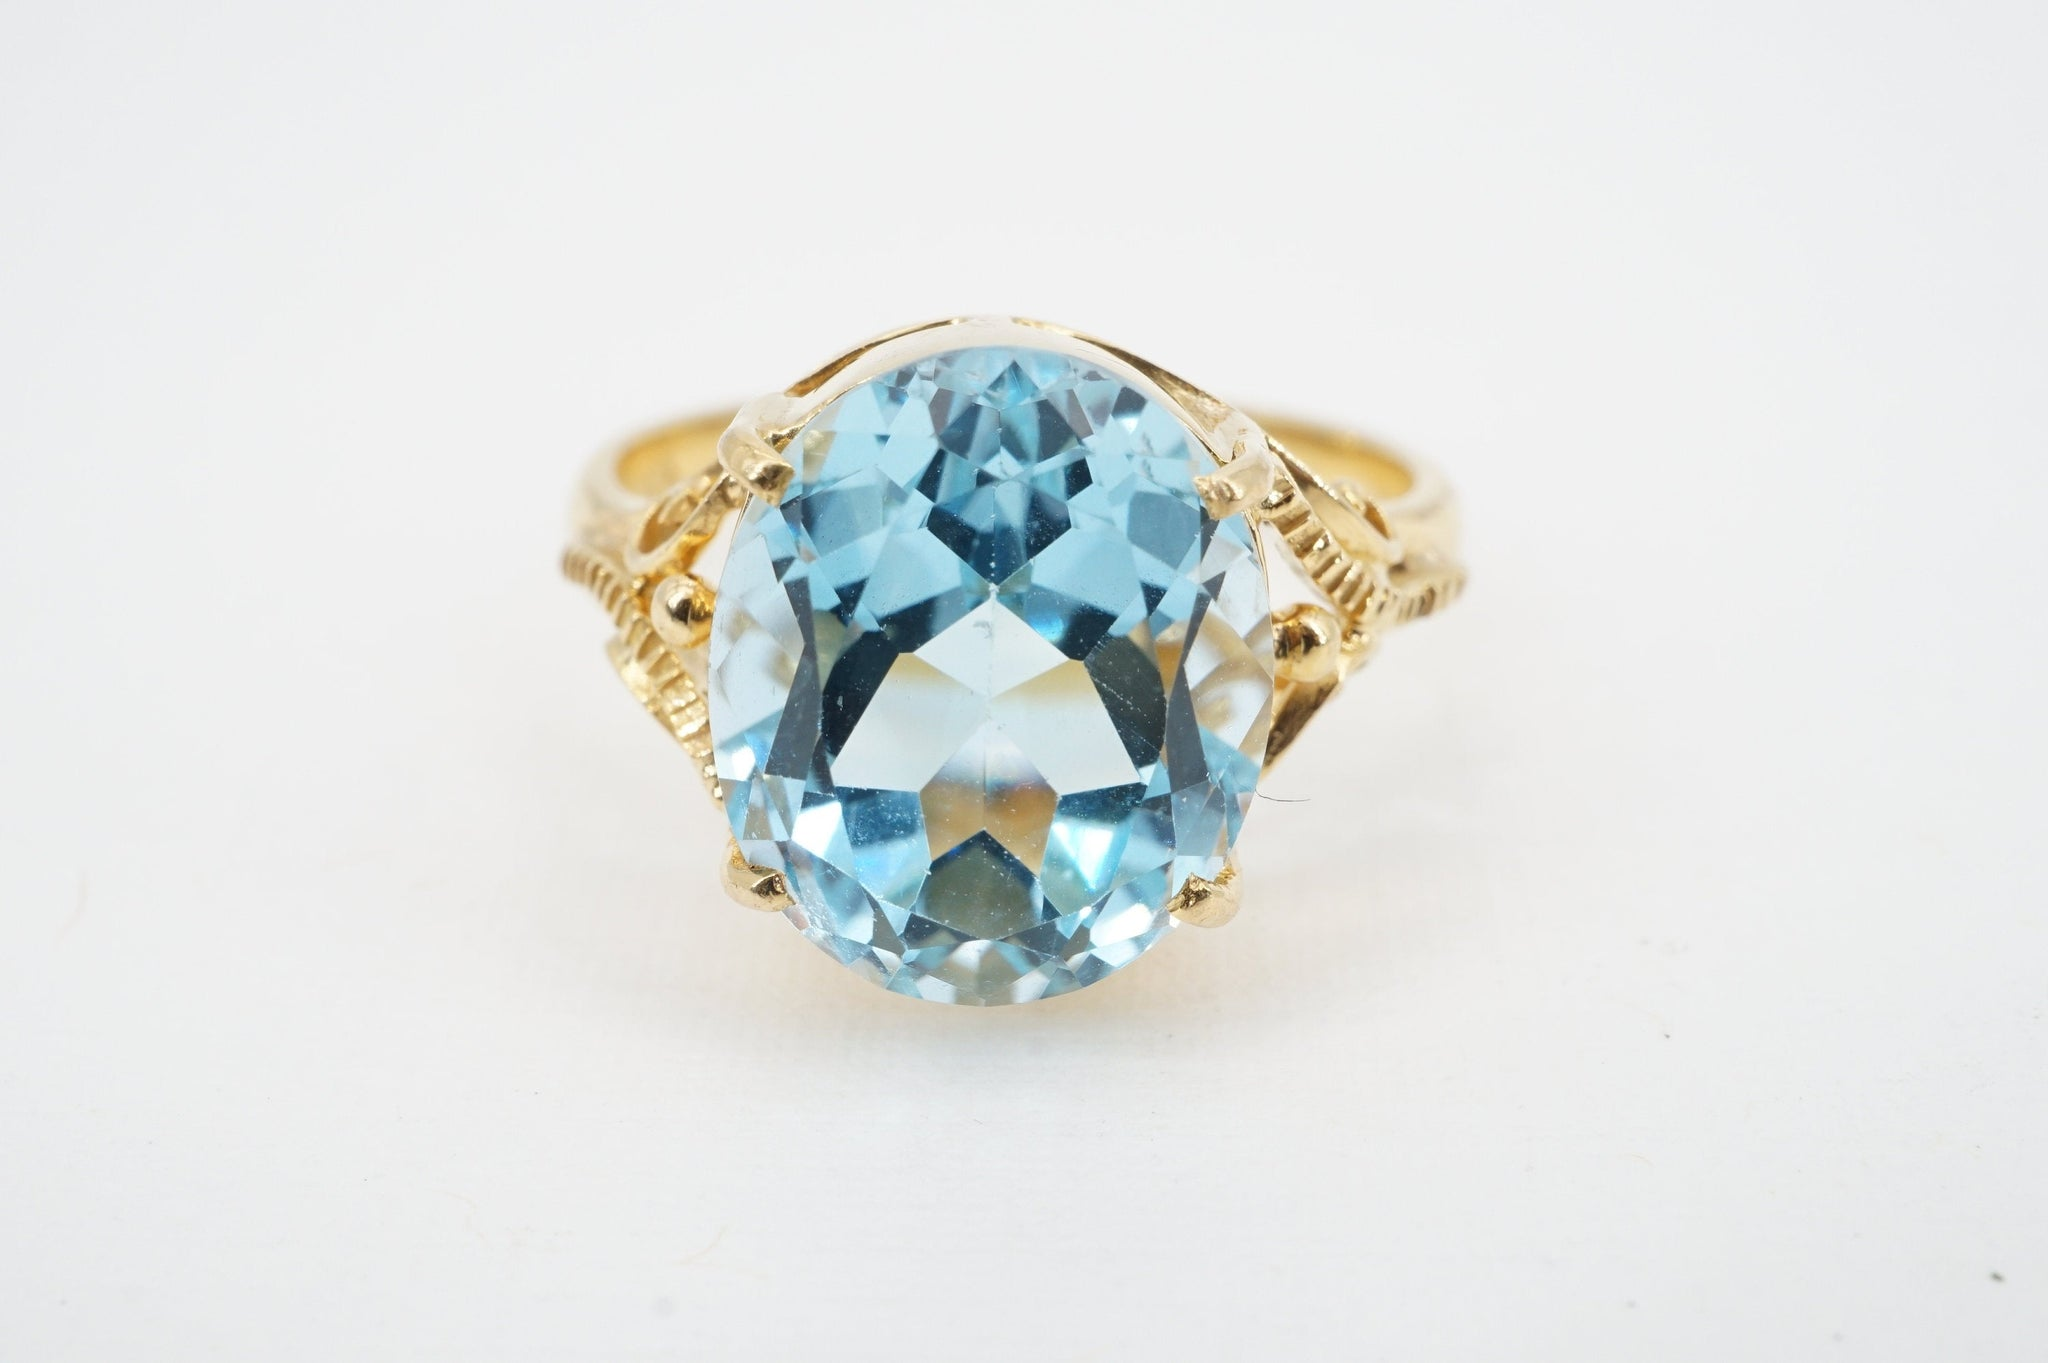 size 6.5 vintage 18k gold blue topaz ring - ww